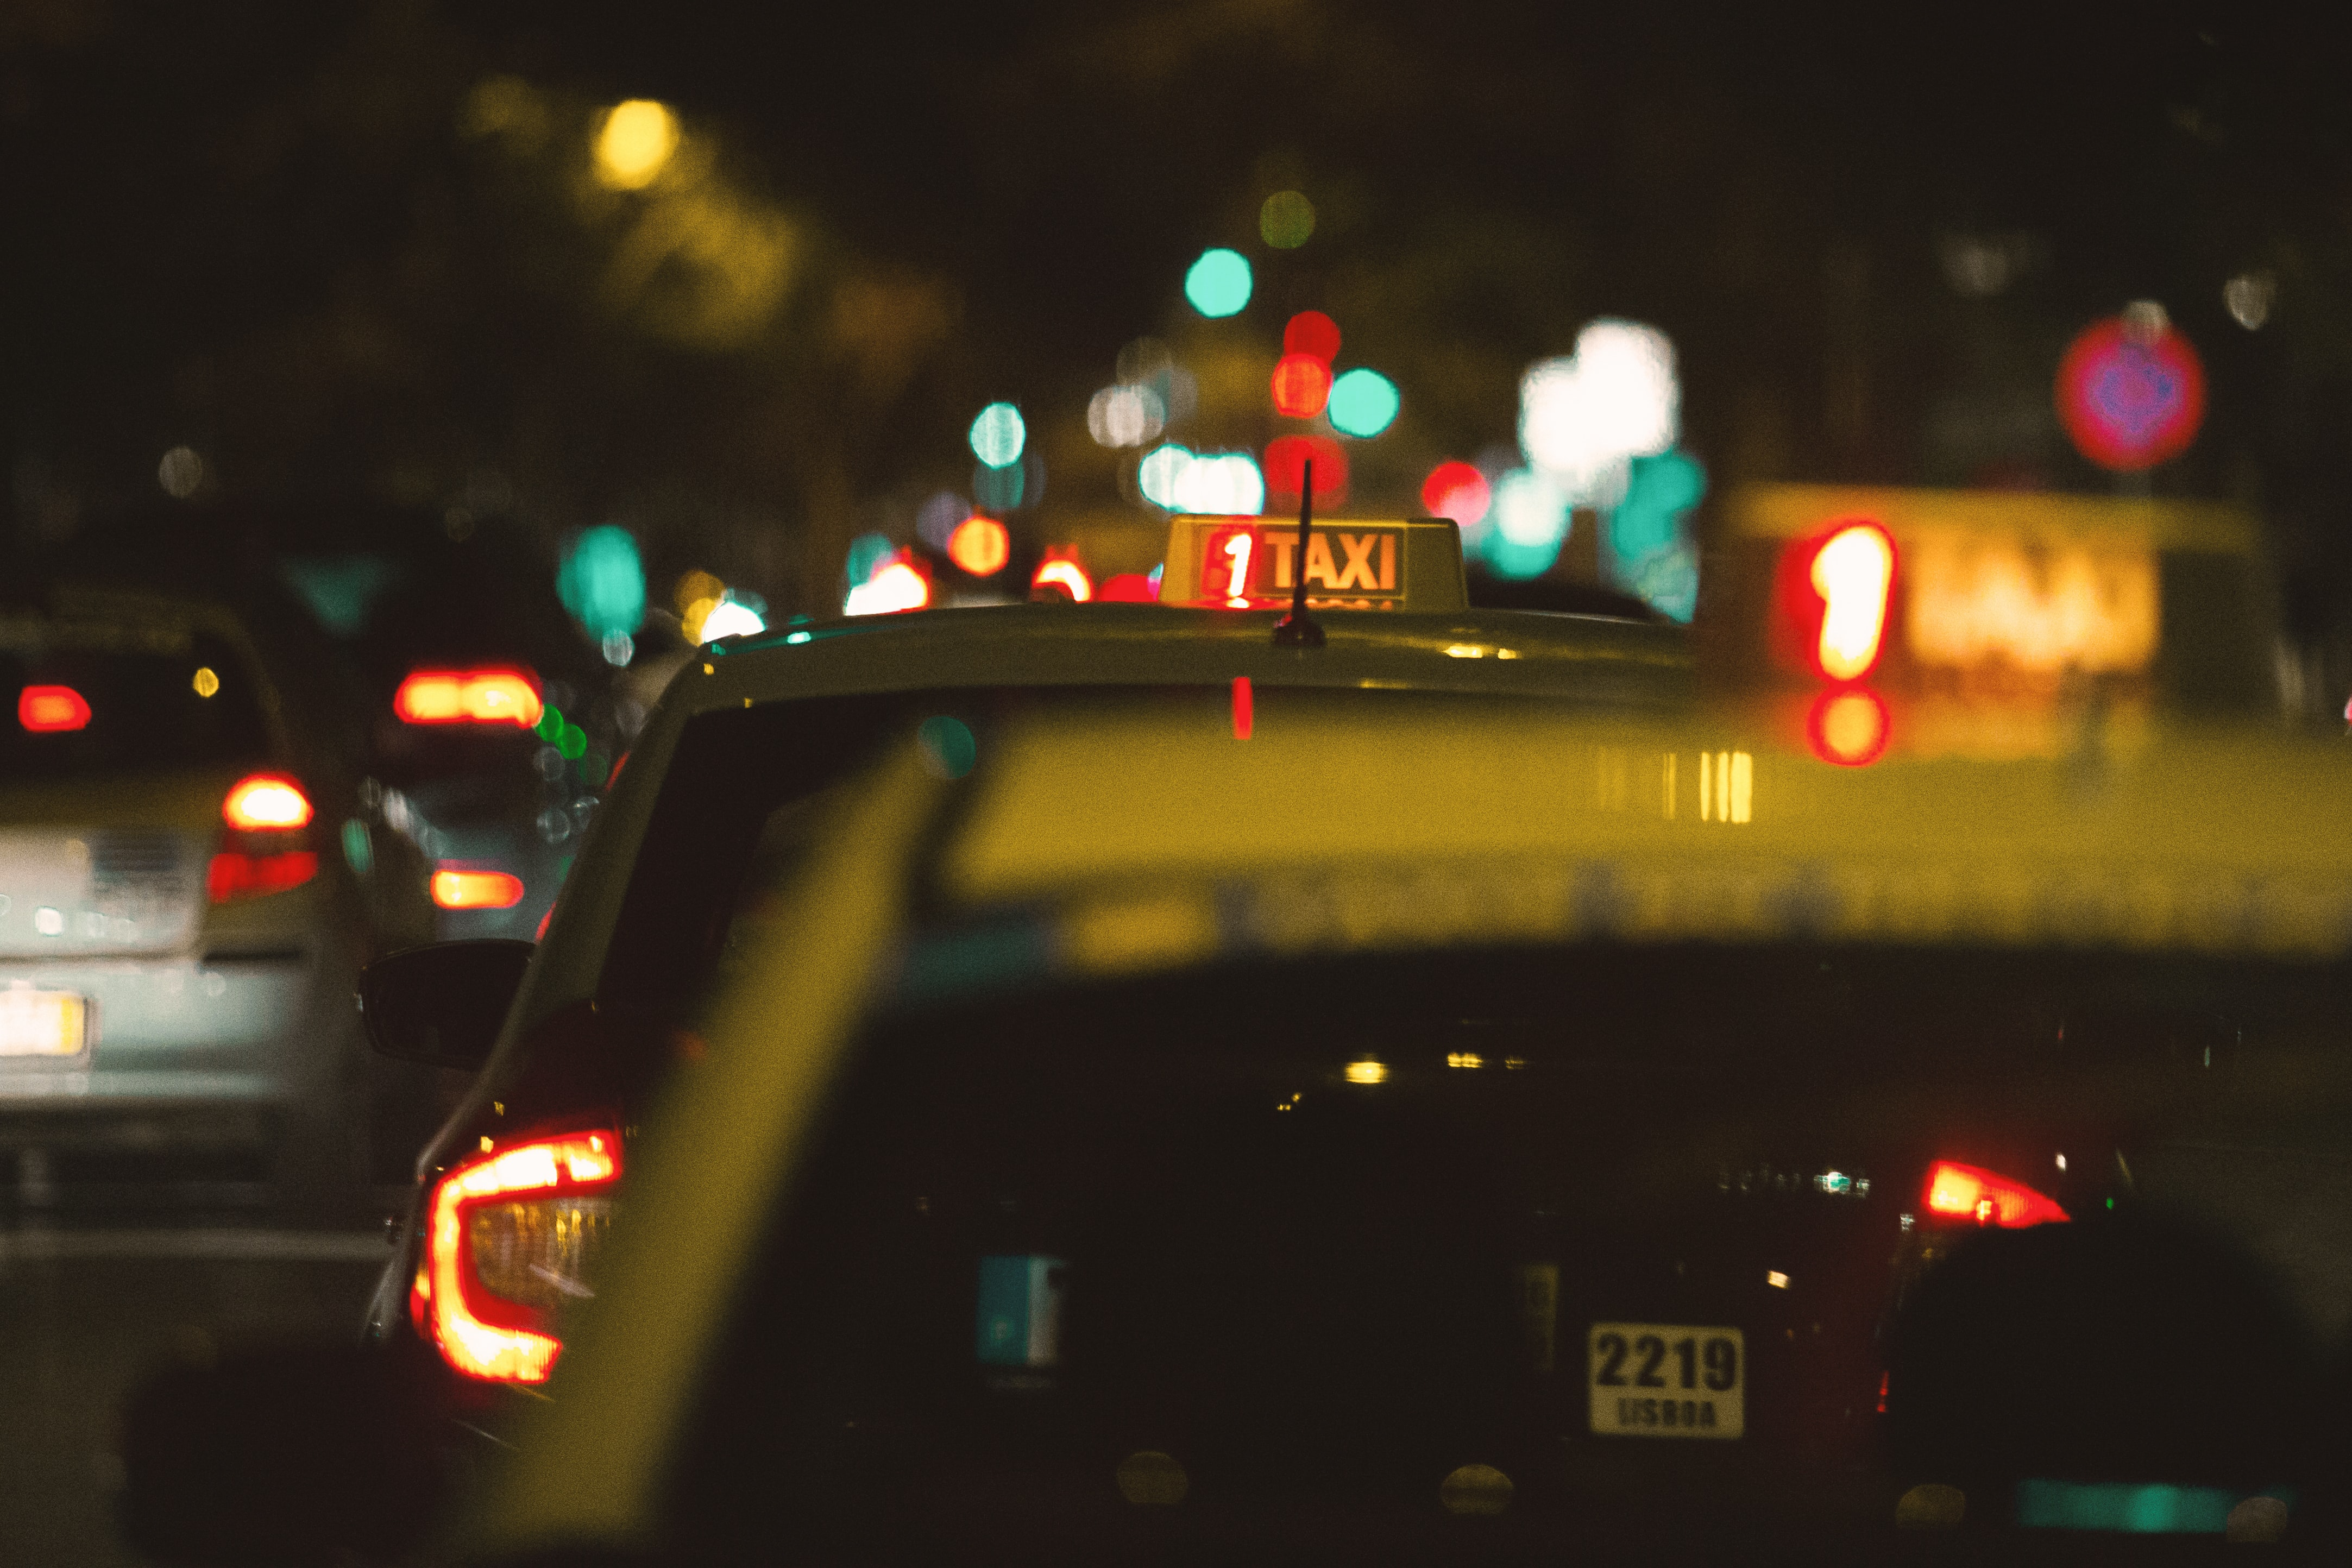 two taxi cabs